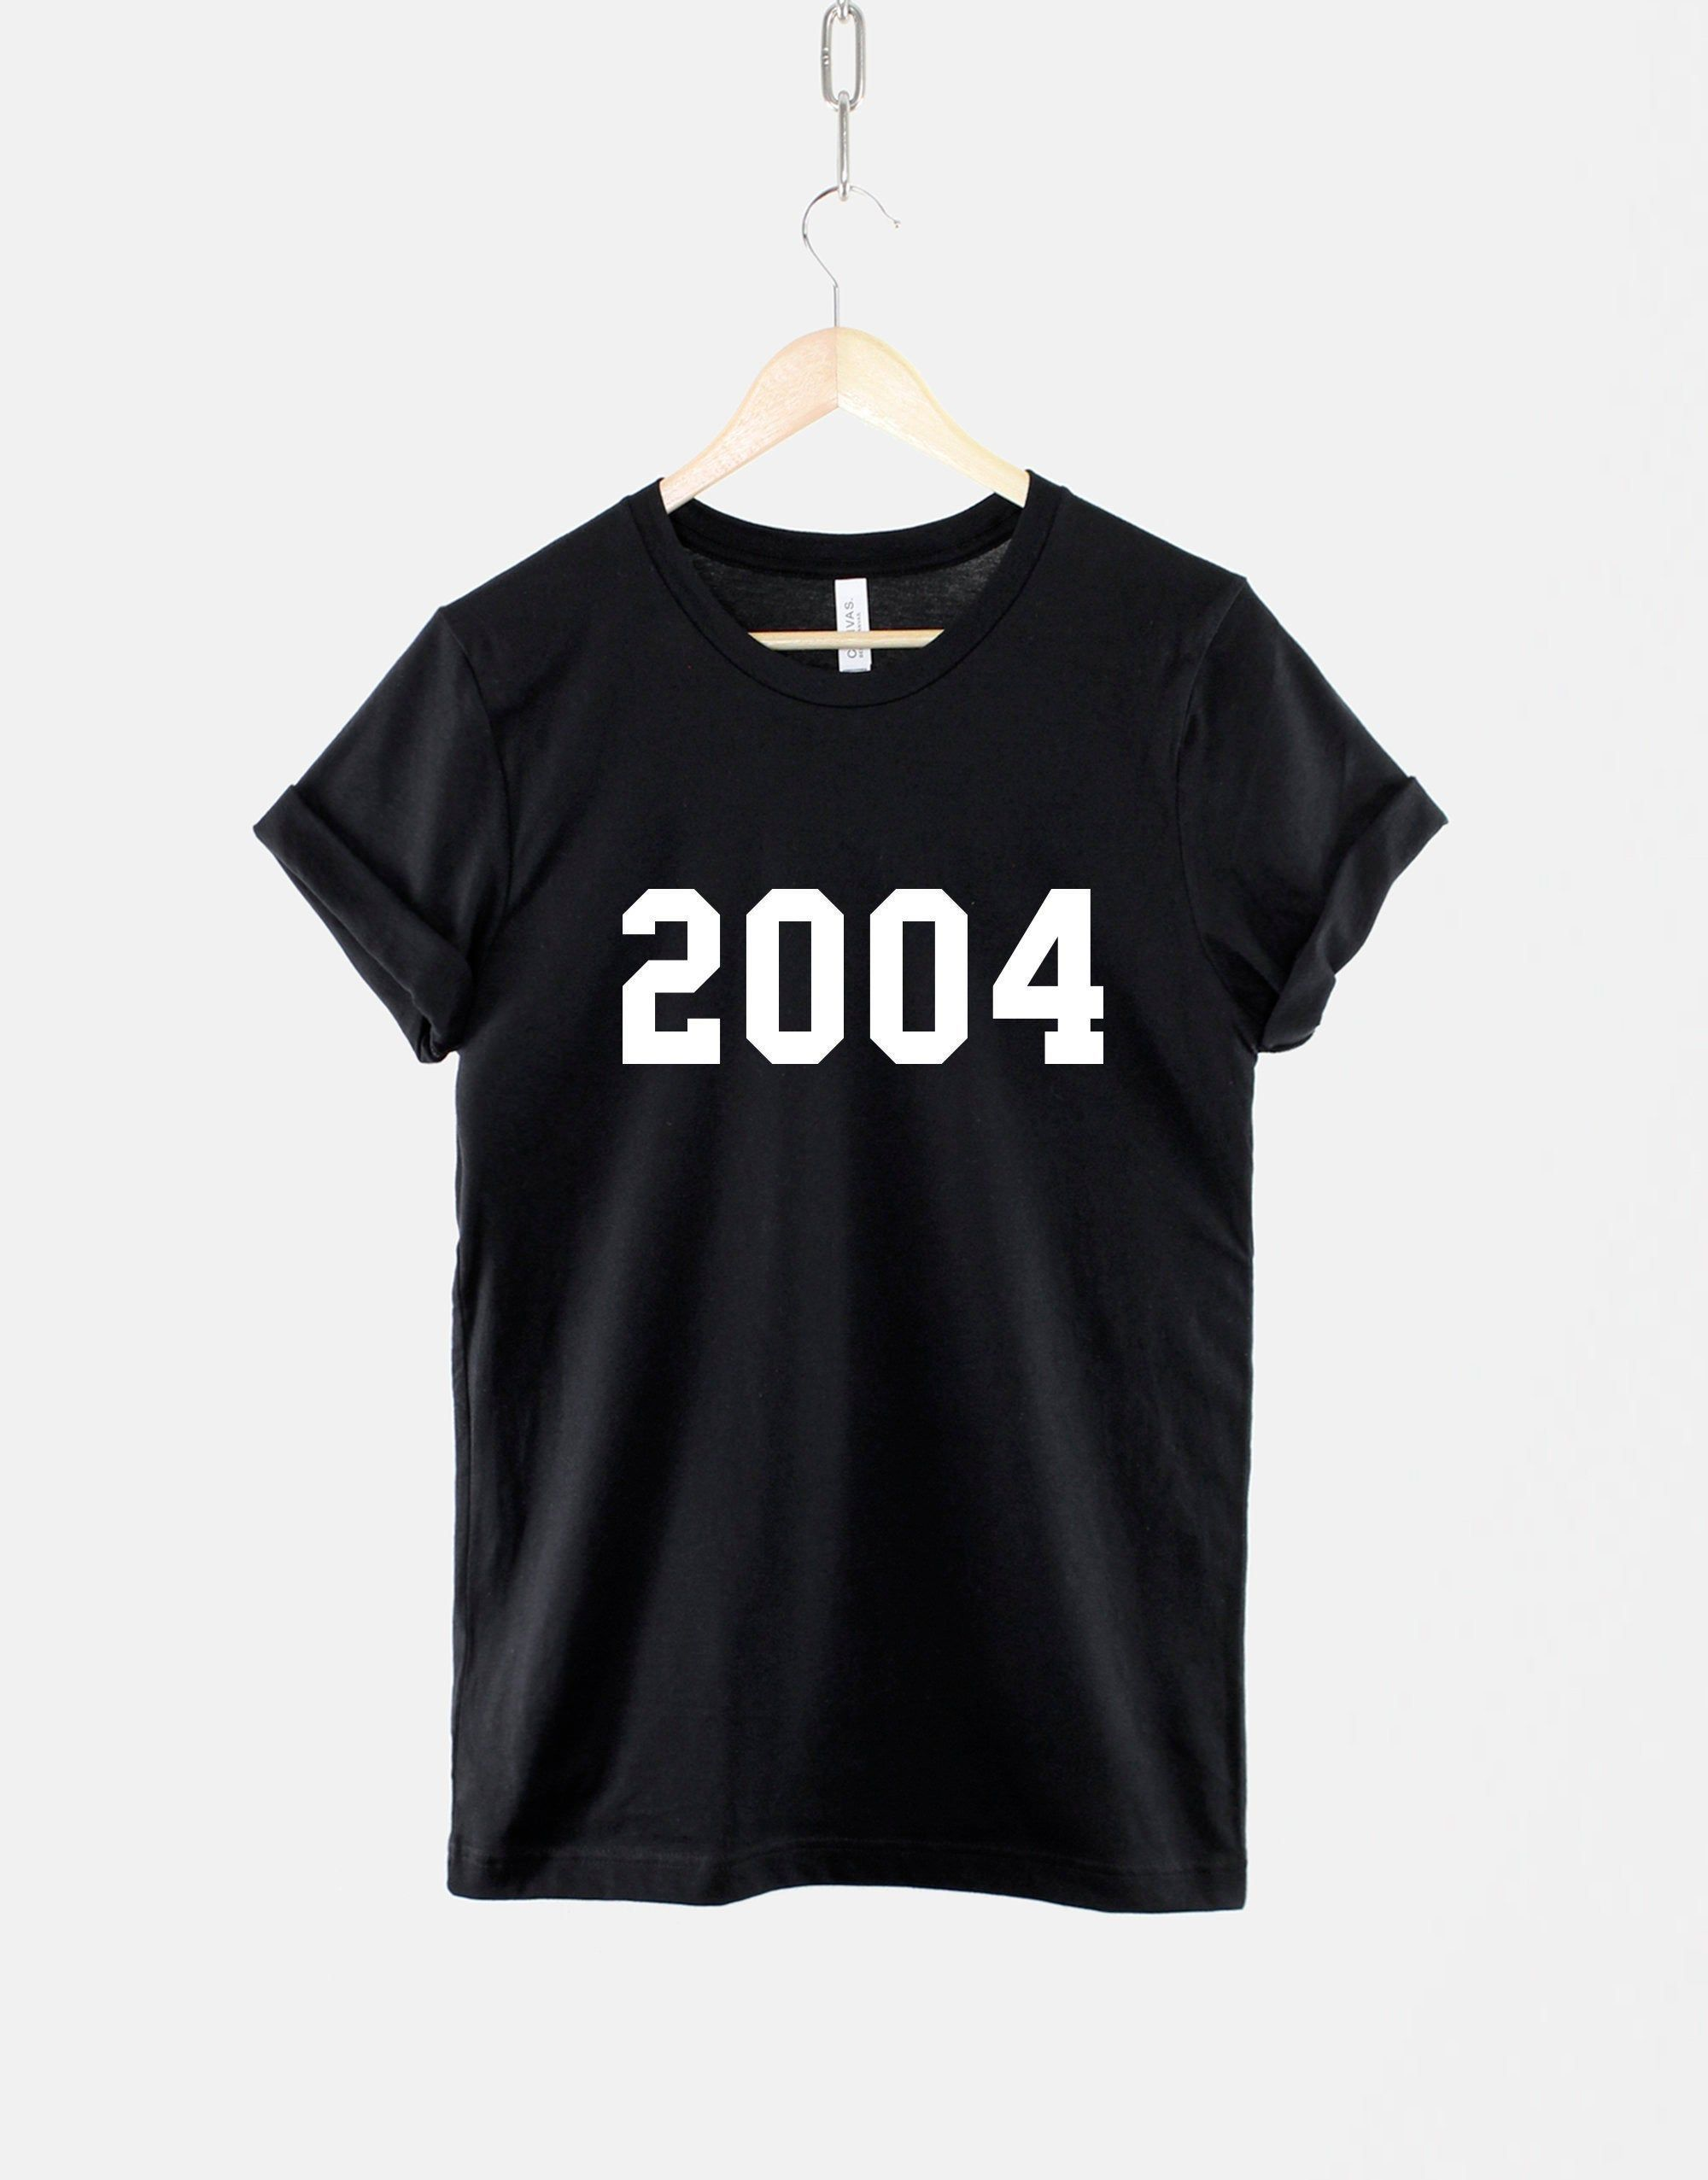 2004 16th Birthday Shirt Made In Year Numbers TShirt in